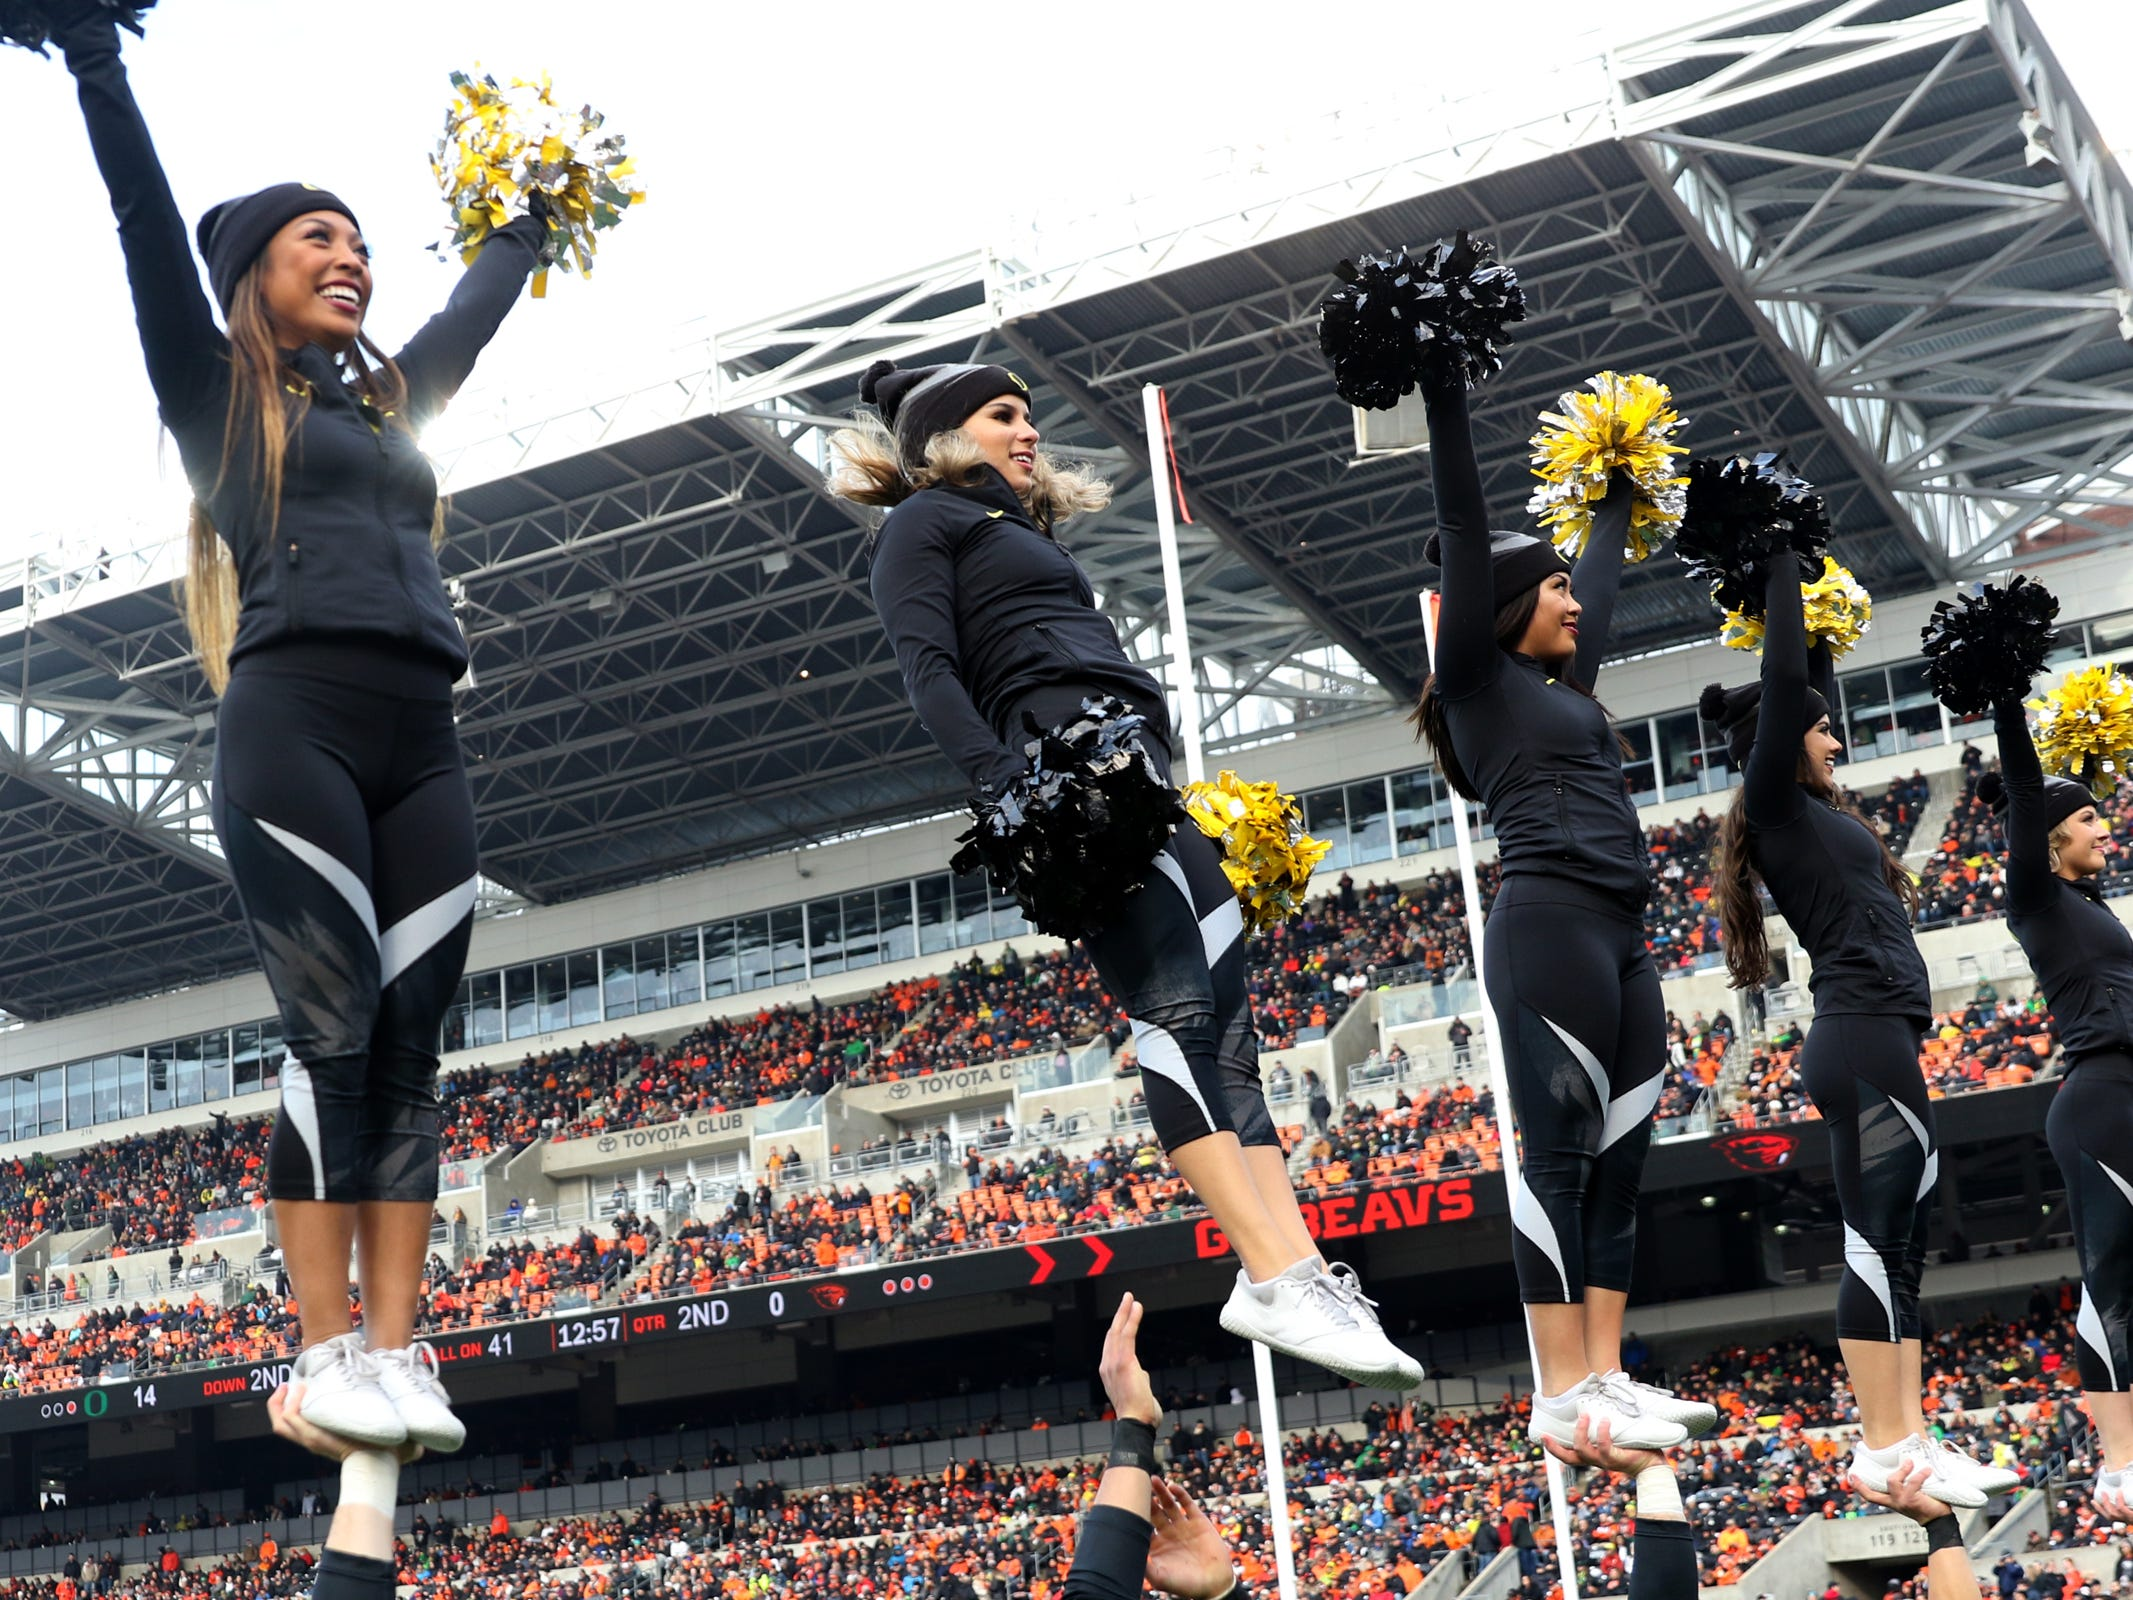 Oregon cheerleaders perform in the Oregon vs. Oregon State Civil war football game at Oregon State University in Corvallis on Friday, Nov. 23, 2018.